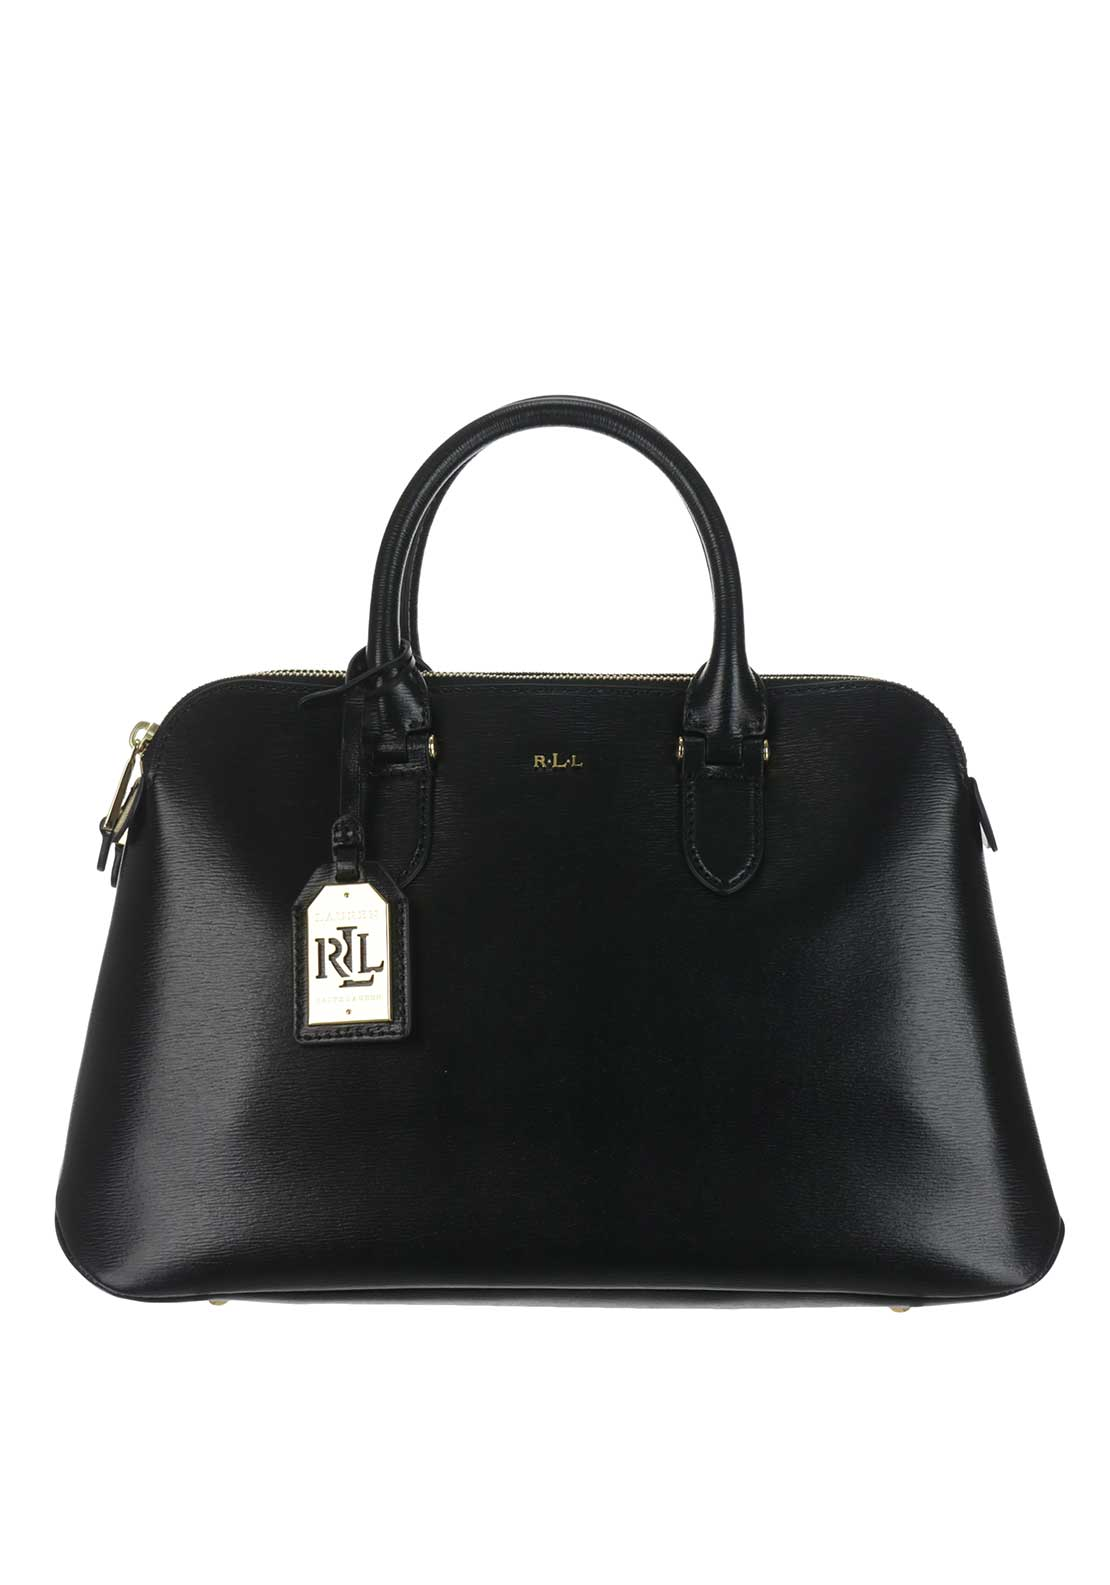 Ralph Lauren Newbury Leather Zip Dome Tote Bag, Black